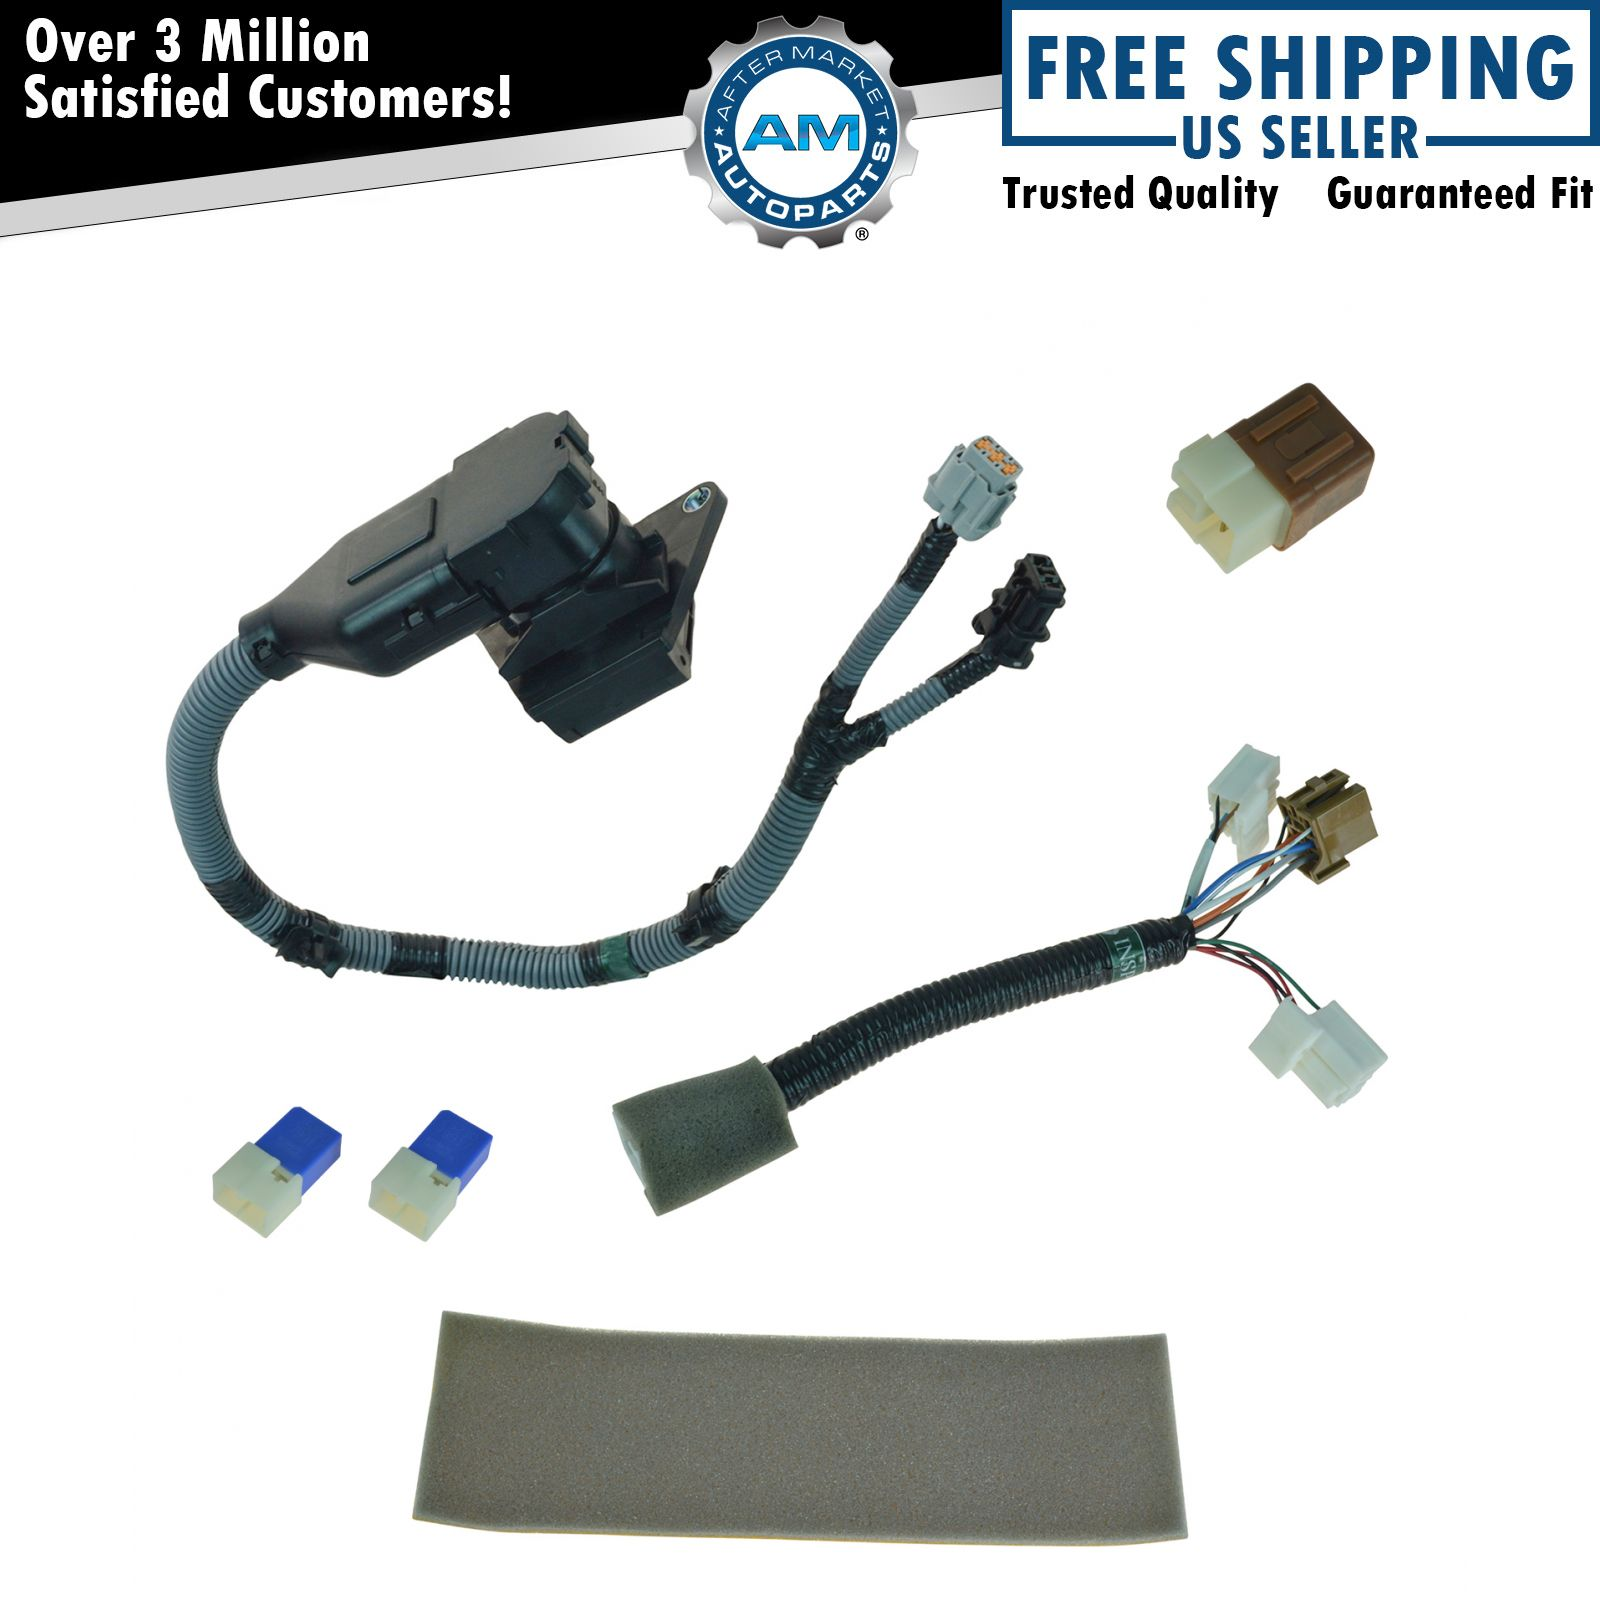 AM 345652165 oem 999t8br020 complete 7 pin plug & play tow harness kit for nissan frontier 7 pin trailer wiring harness at creativeand.co